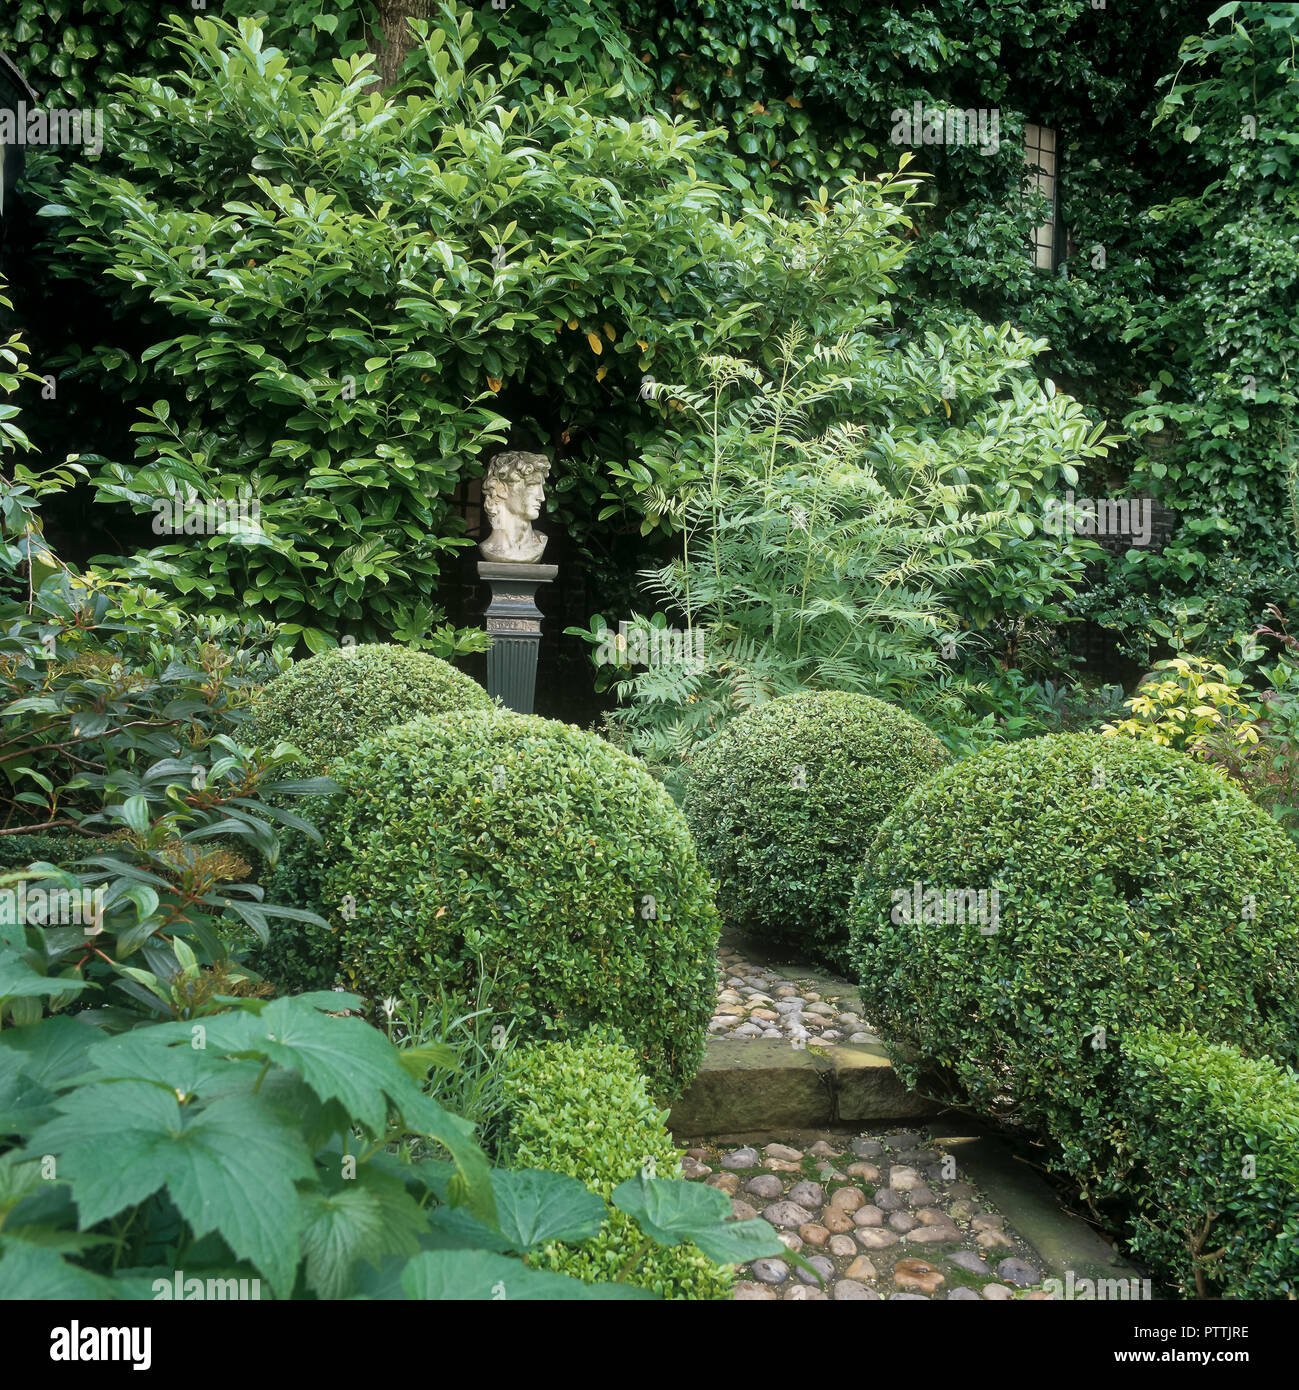 Clipped box balls and pebbled path with statue‌ in Kensington Garden - Stock Image